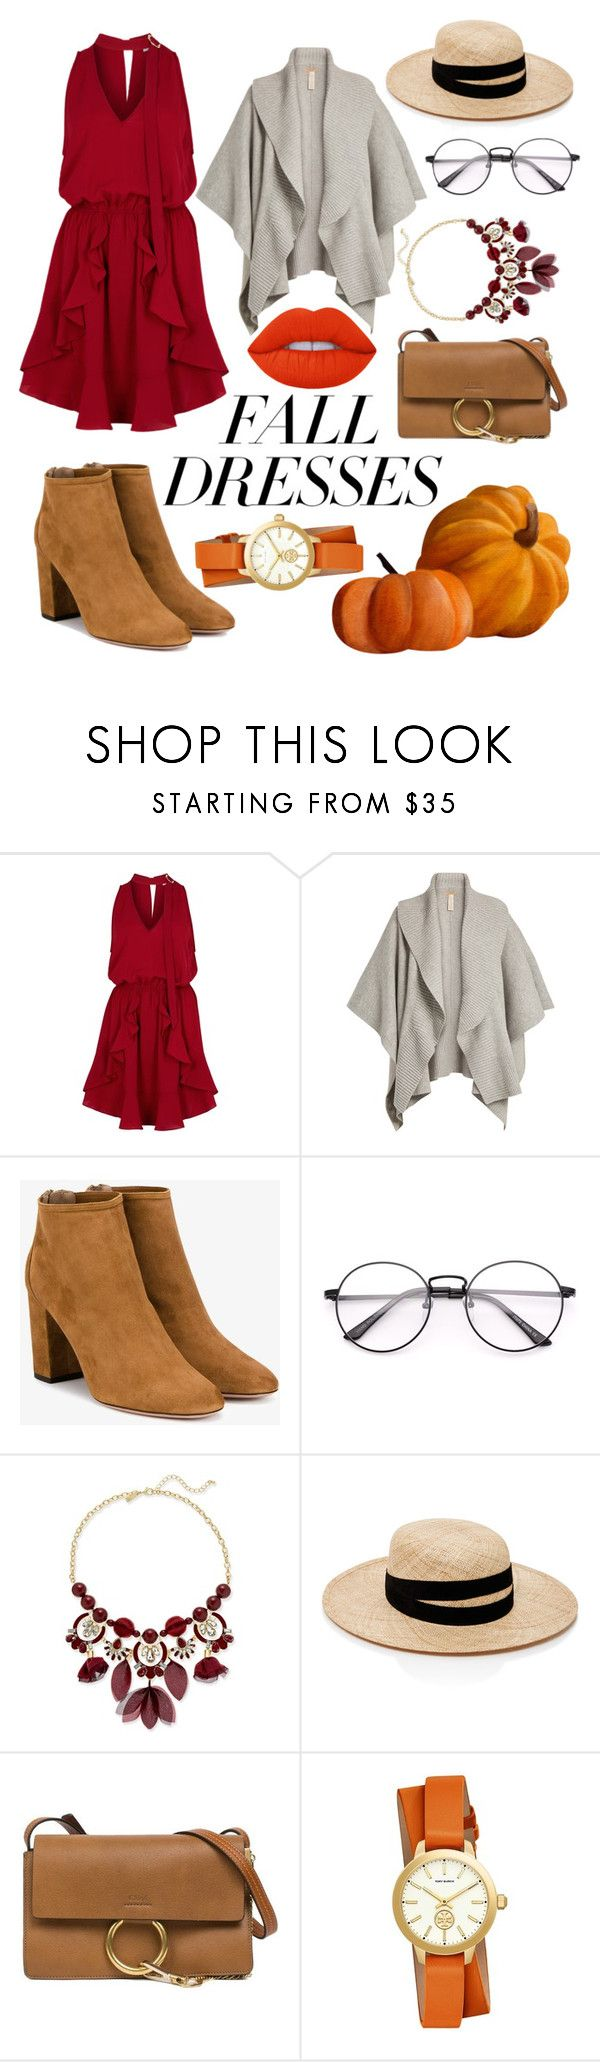 """""""Fall Dresses"""" by crazy-otaku ❤ liked on Polyvore featuring Finders Keepers, Burberry, Aquazzura, INC International Concepts, Janessa Leone, Chloé, Tory Burch and Lime Crime"""